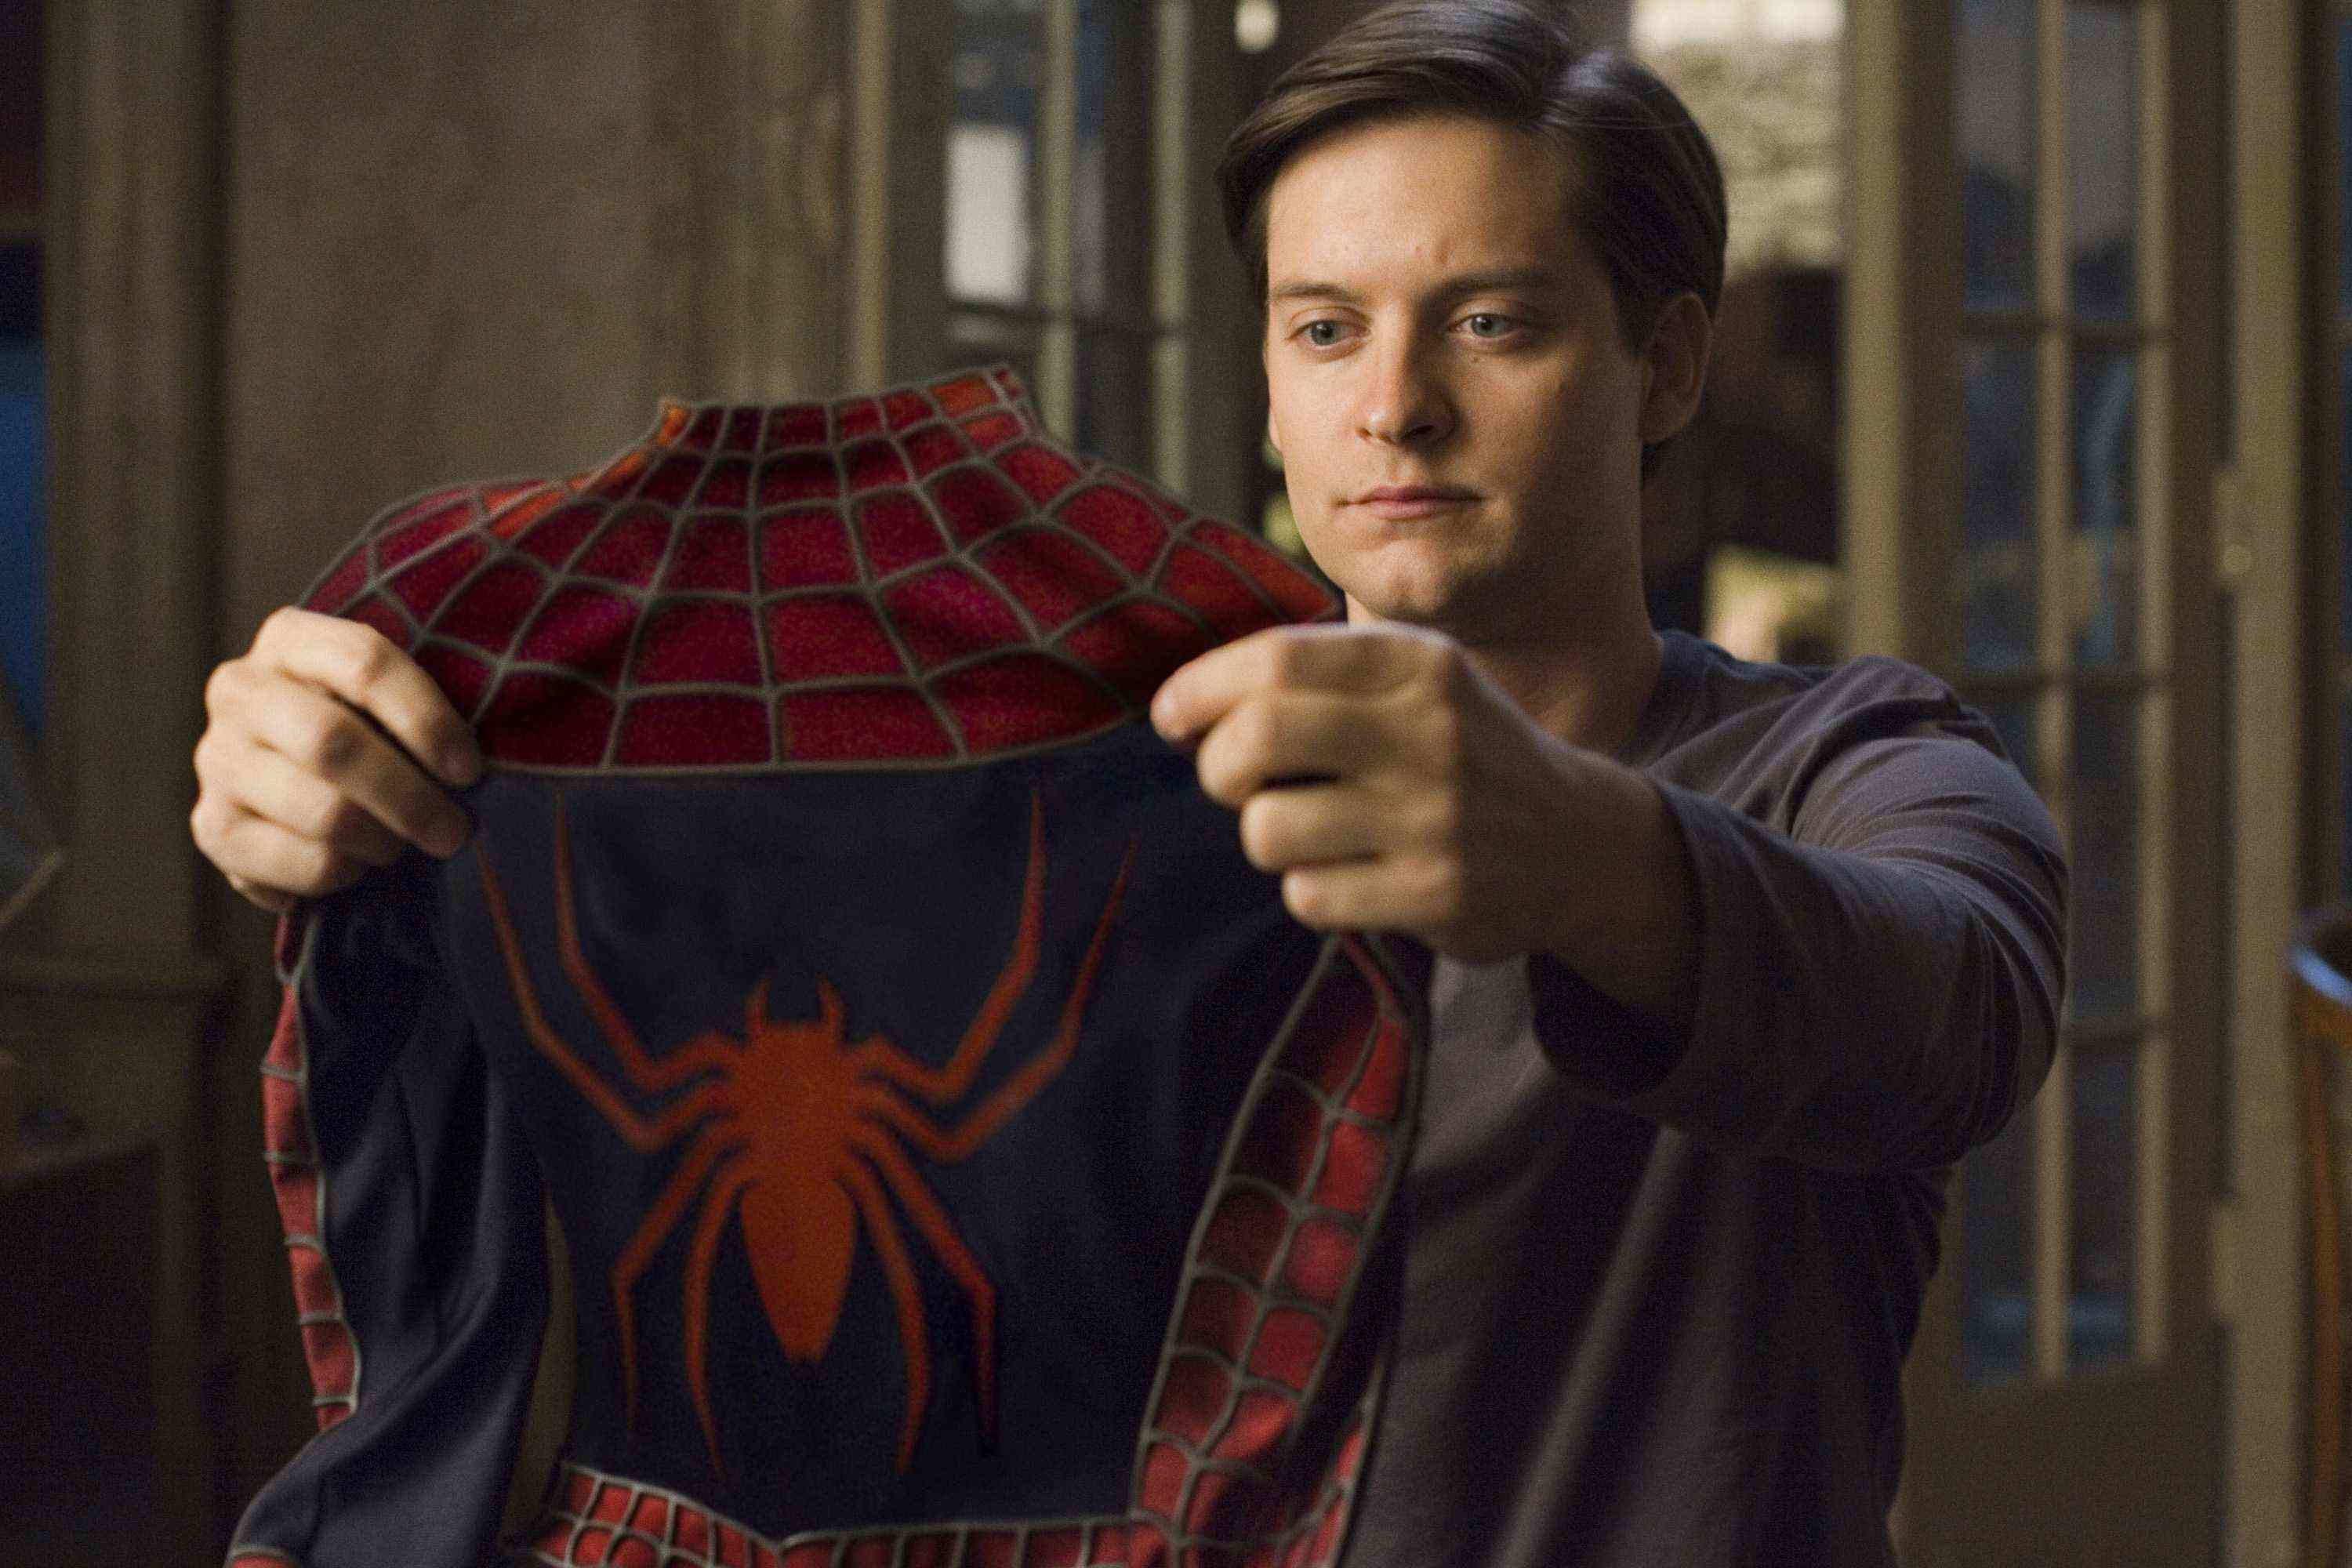 Spider-Man star Tobey Maguire would consider new superhero role